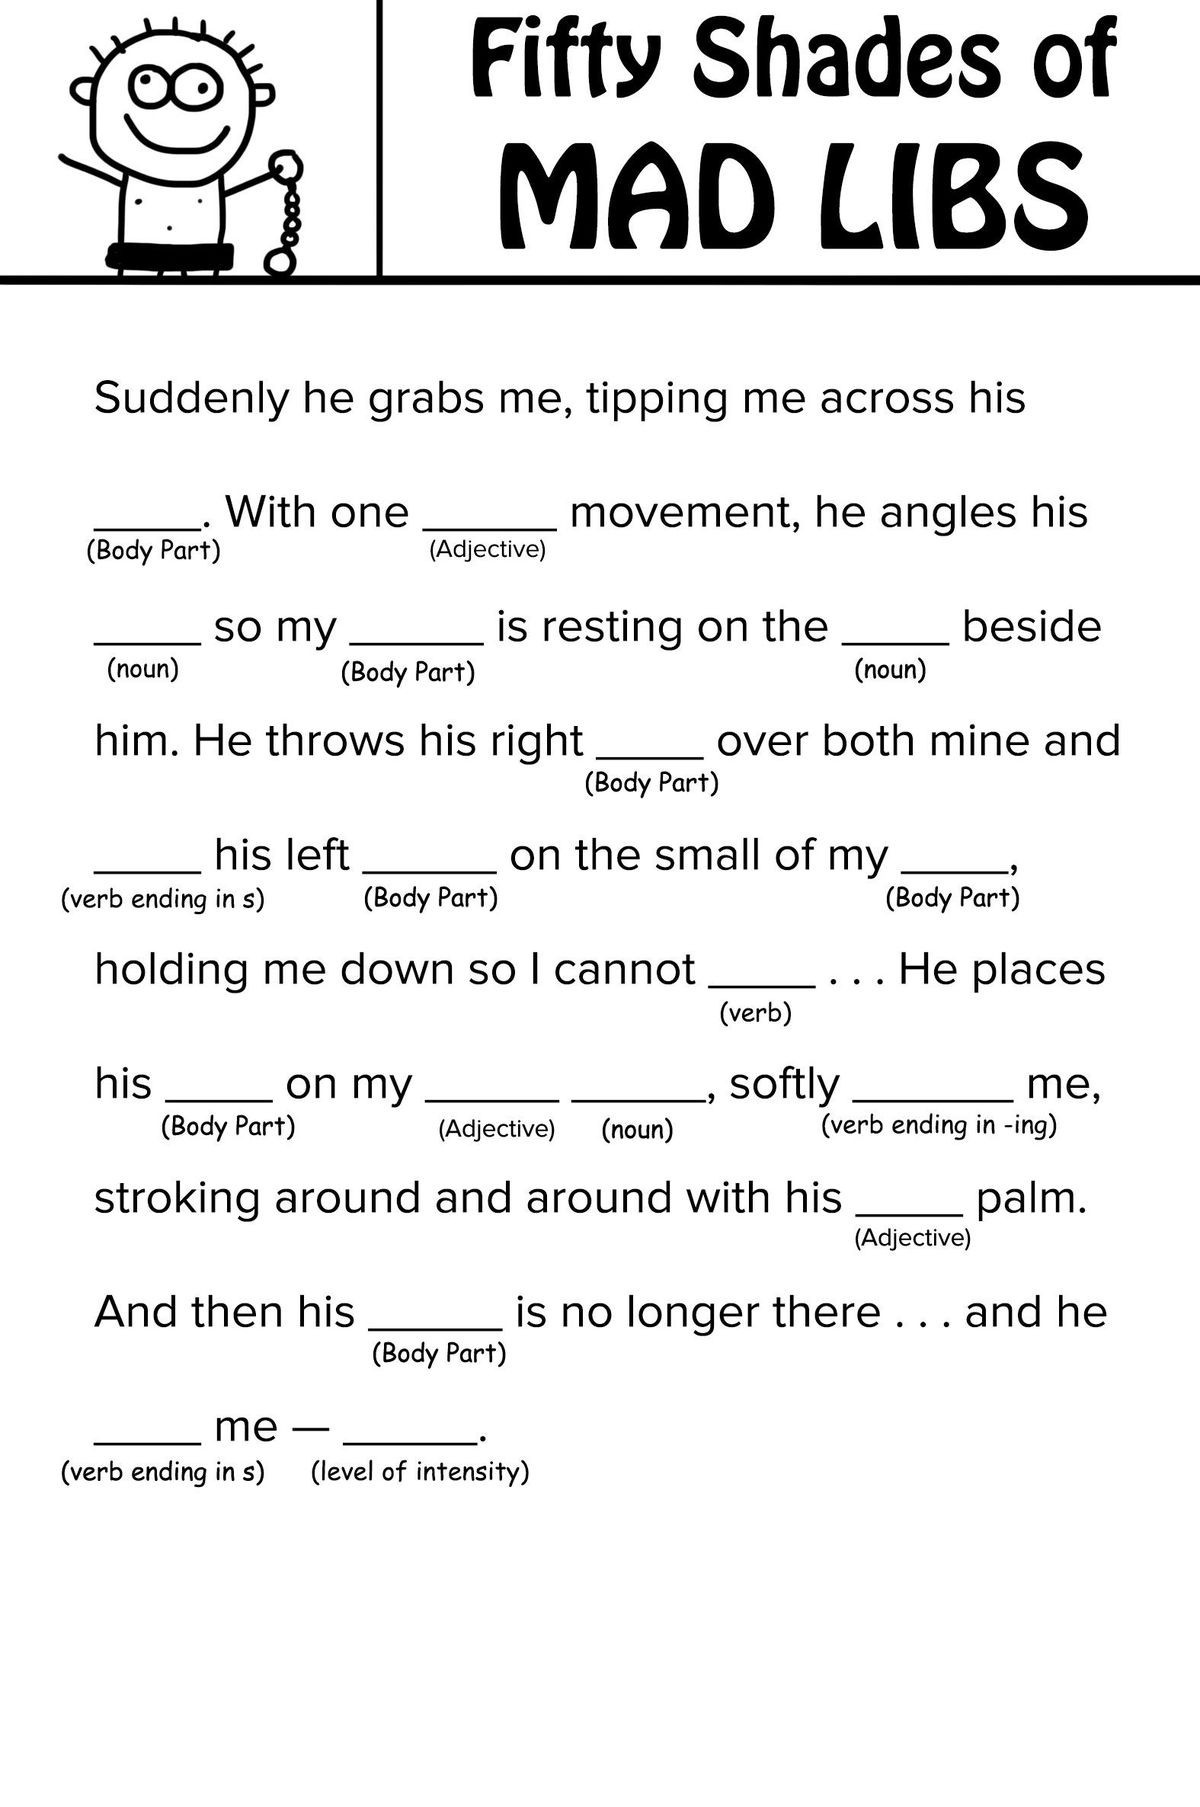 Free Printable Mad Libs For Kids (97+ Images In Collection) Page 2 - Free Printable Mad Libs For Middle School Students